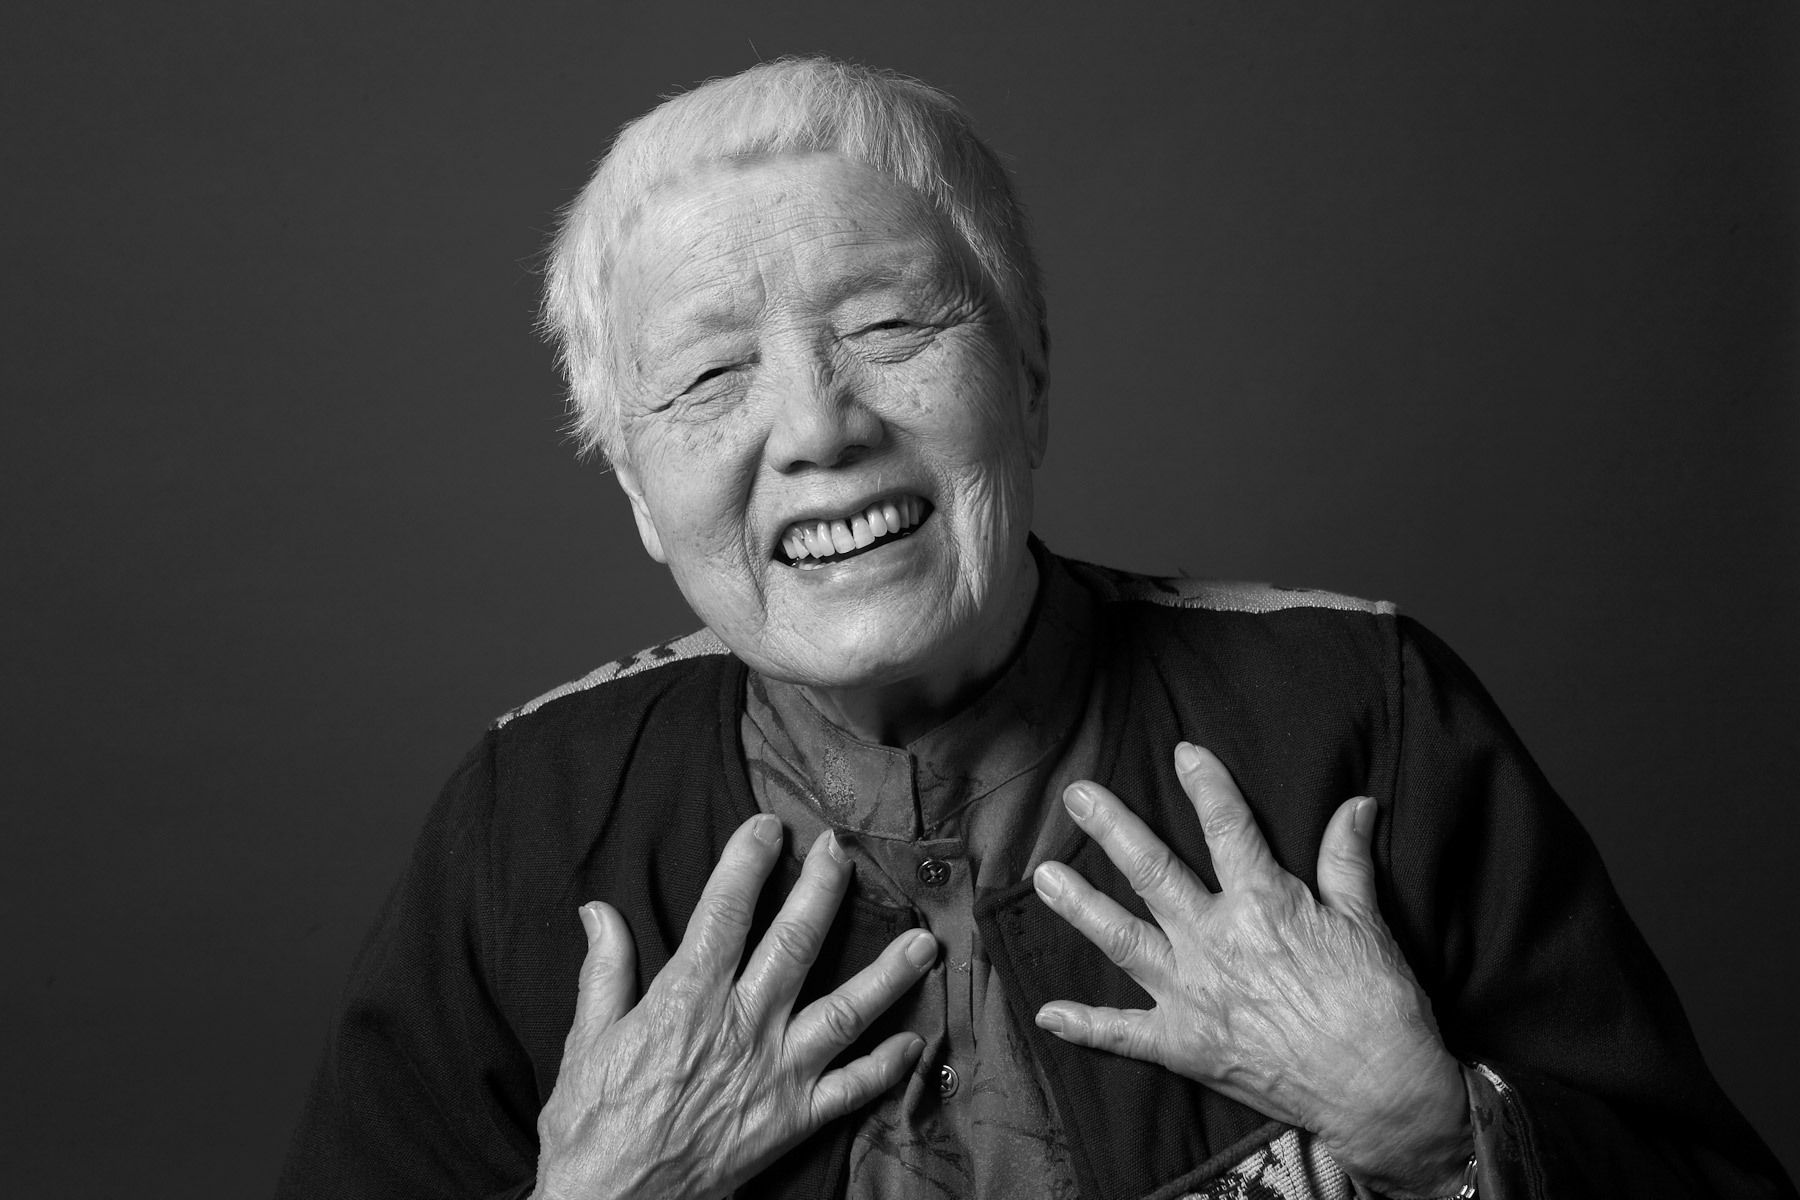 Grace Lee Boggs, activist and philosopher